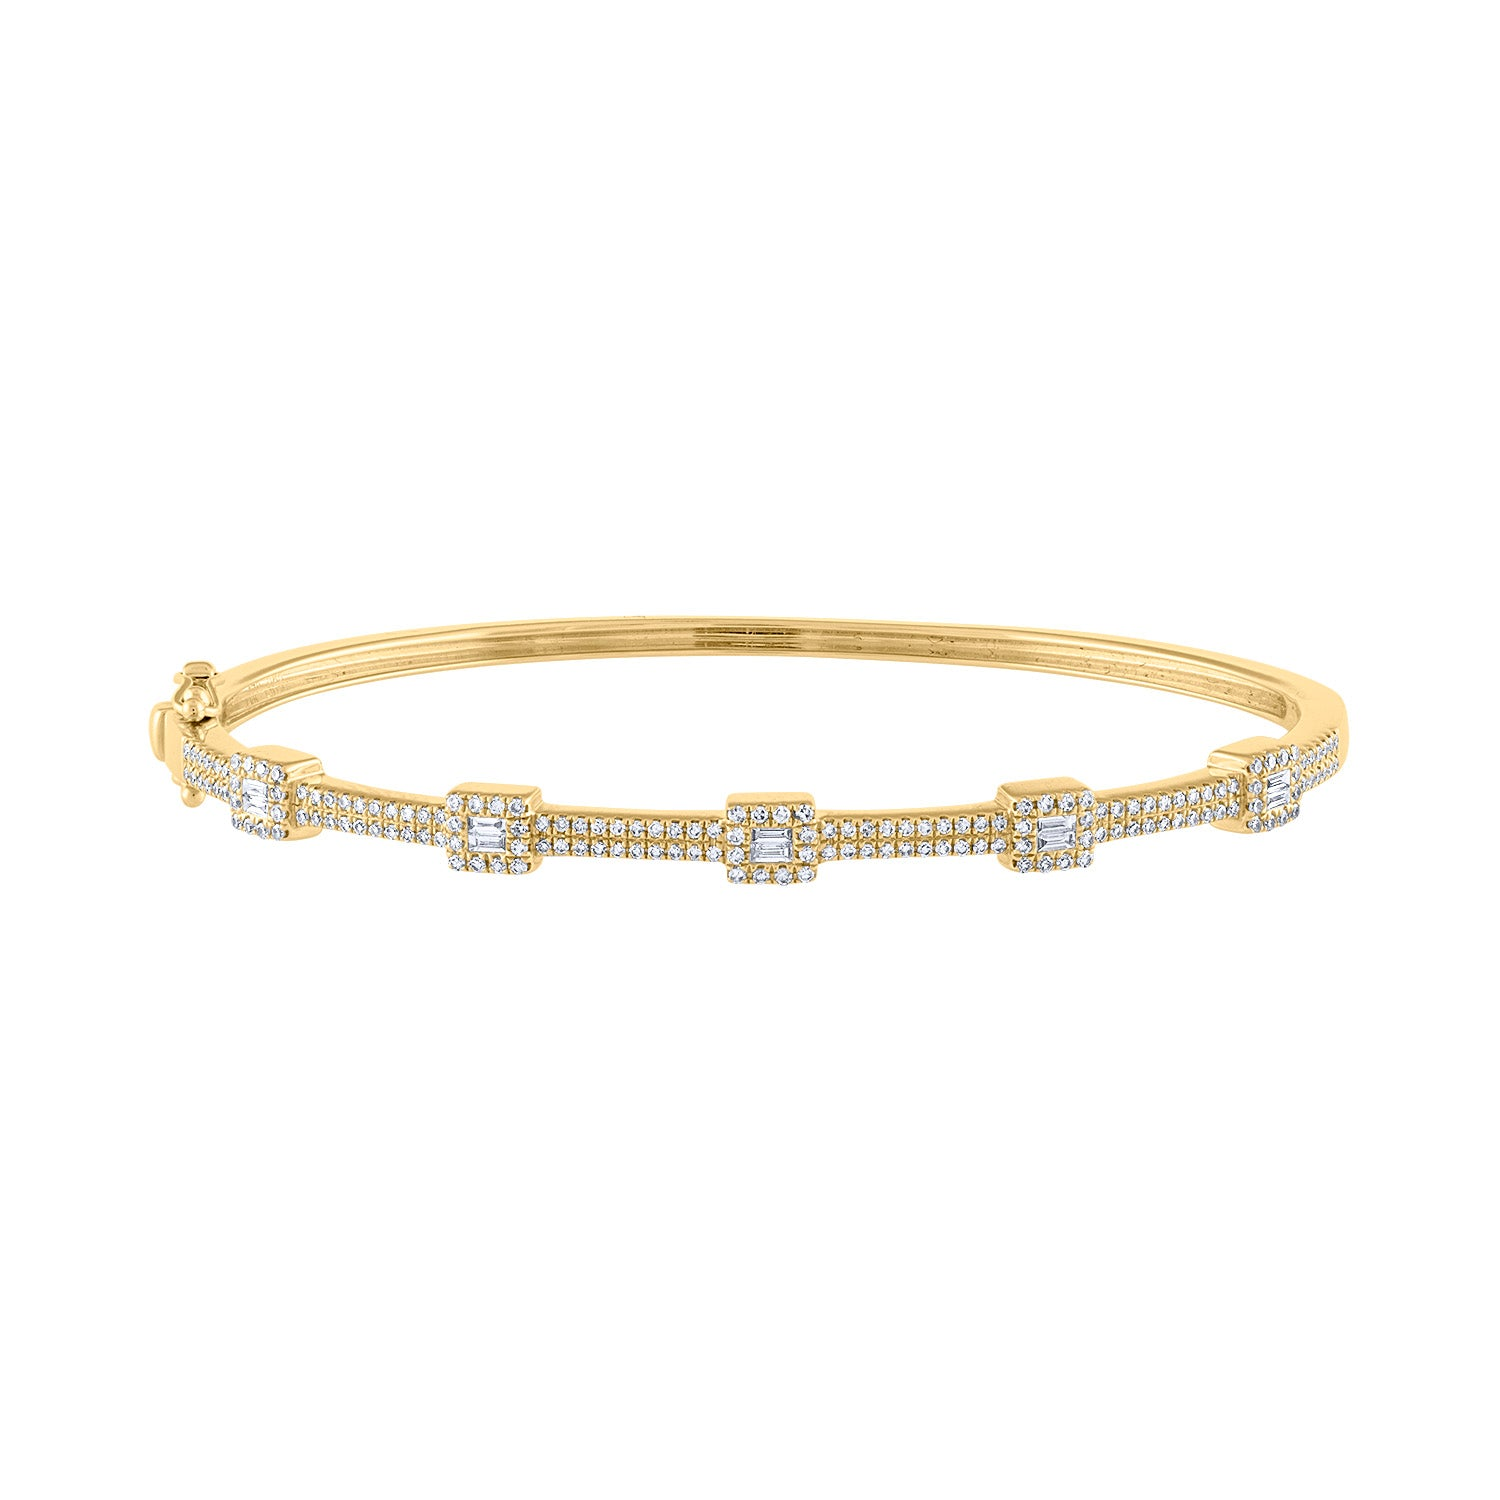 14K Yellow Gold baguette pave diamond bangle